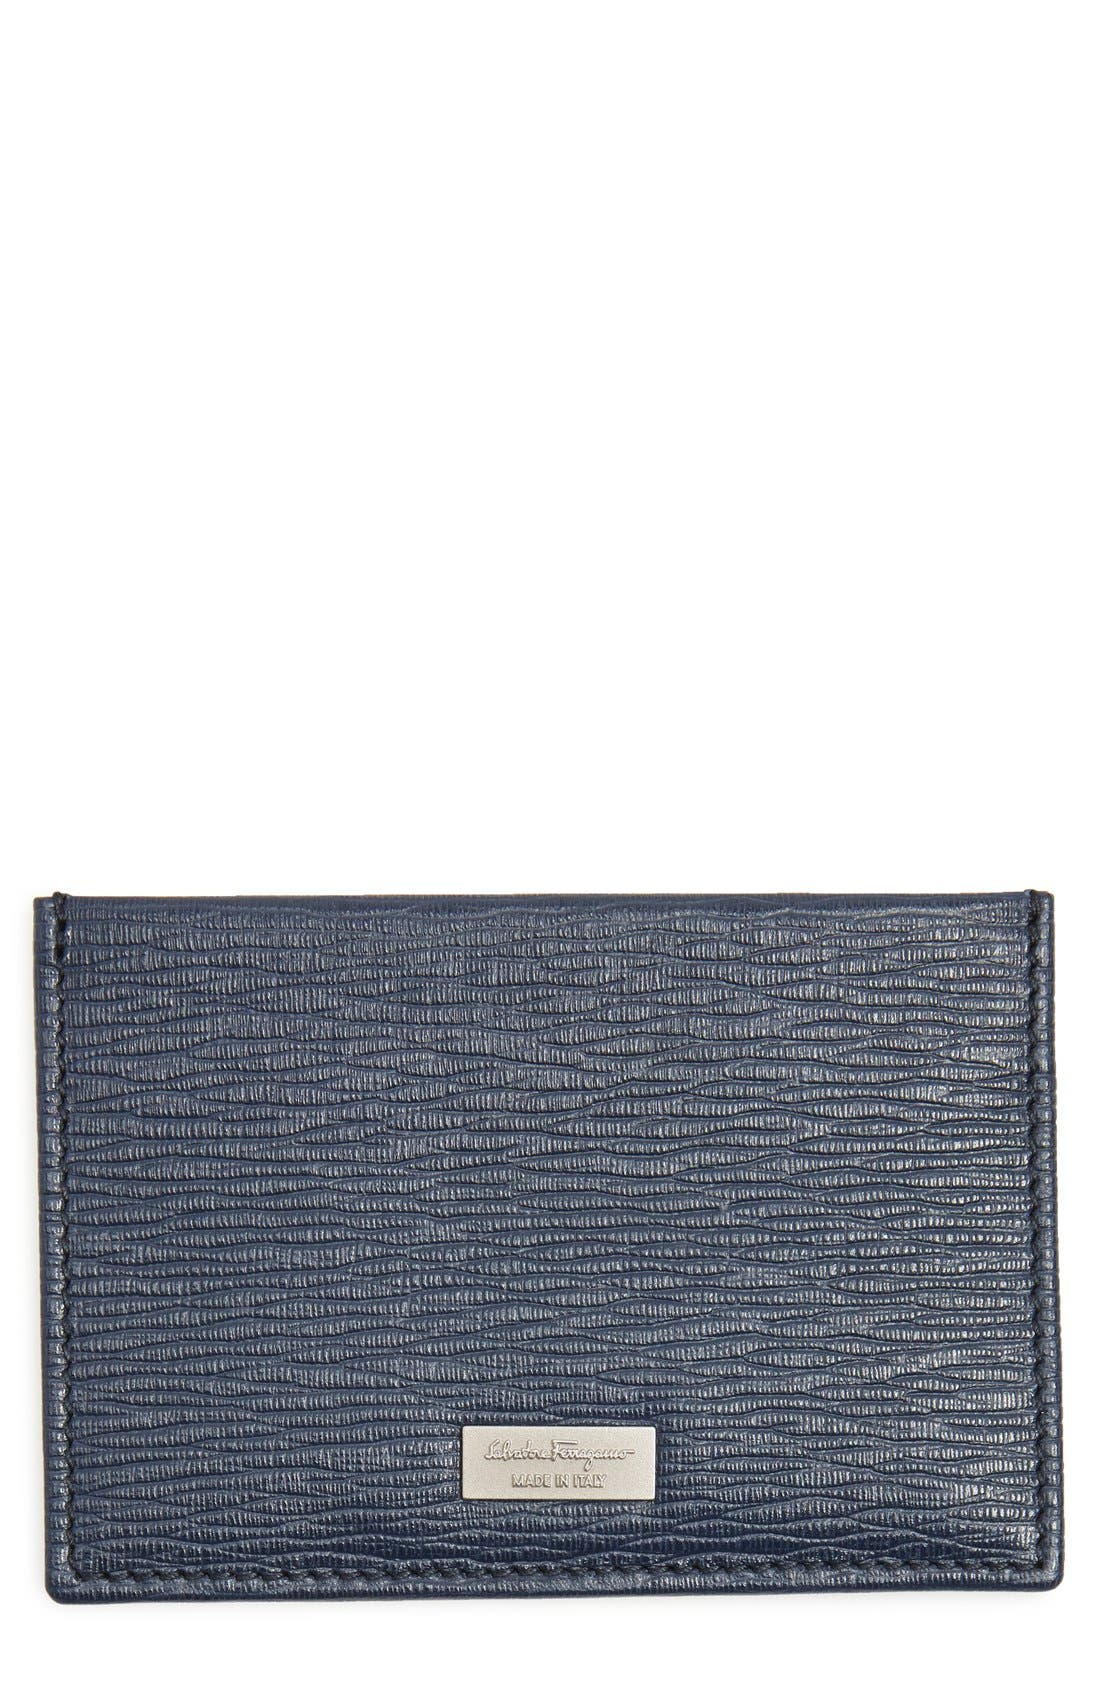 Alternate Image 1 Selected - Salvatore Ferragamo 'New Revival' Leather Card Case